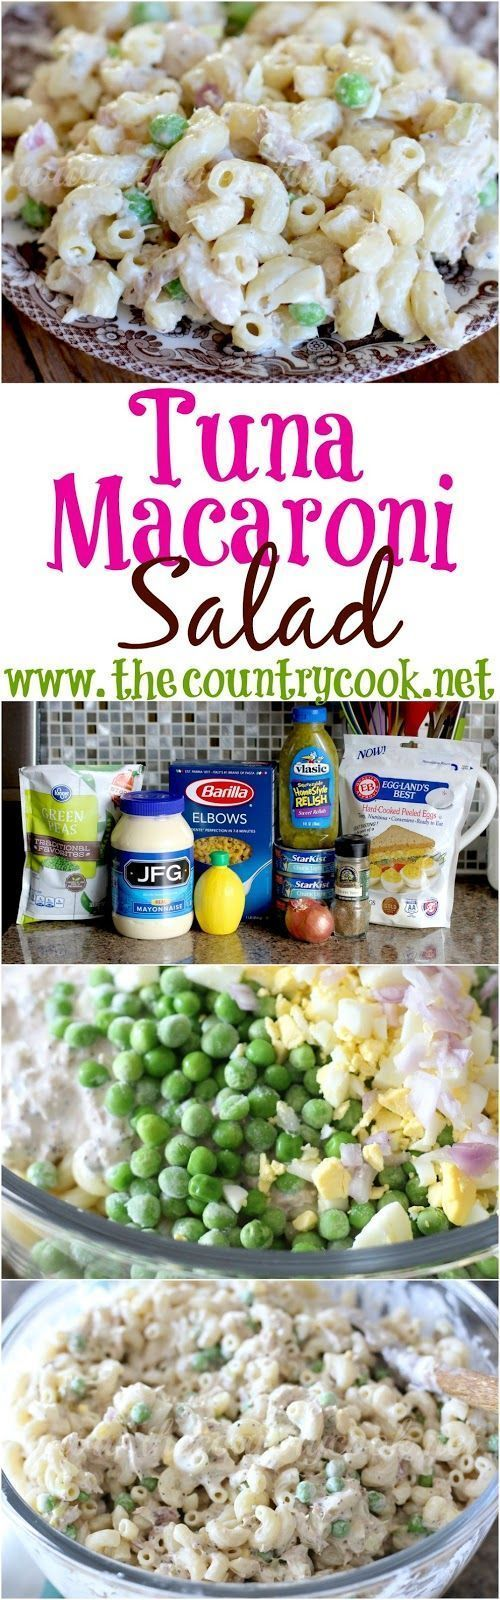 Tuna Macaroni Salad recipe from The Country Cook. Delicious flavors with lots of filling protein! Everyone loves this!